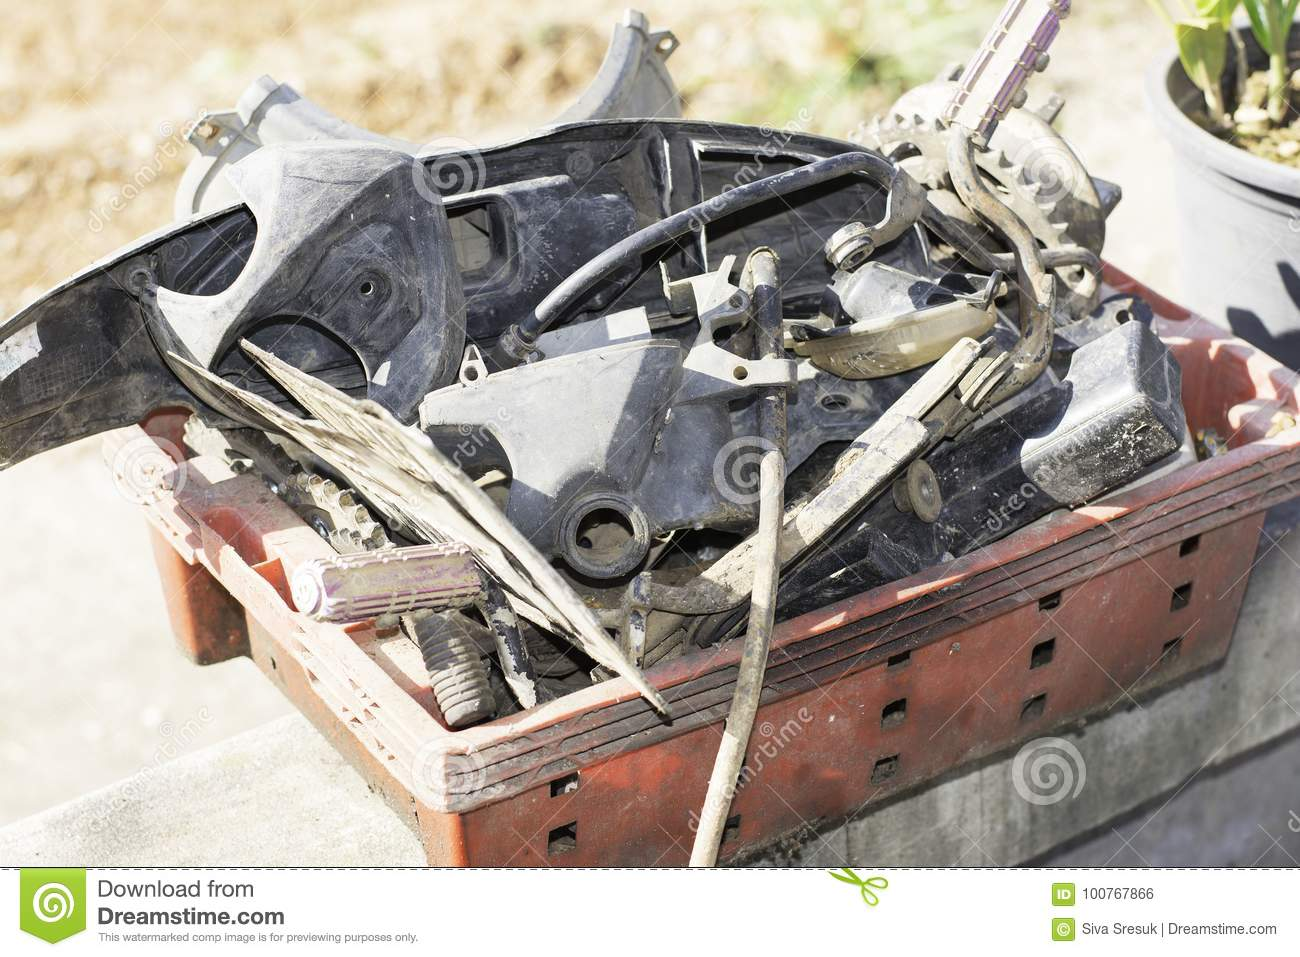 Motorcycle spare parts stock photo  Image of engine - 100767866